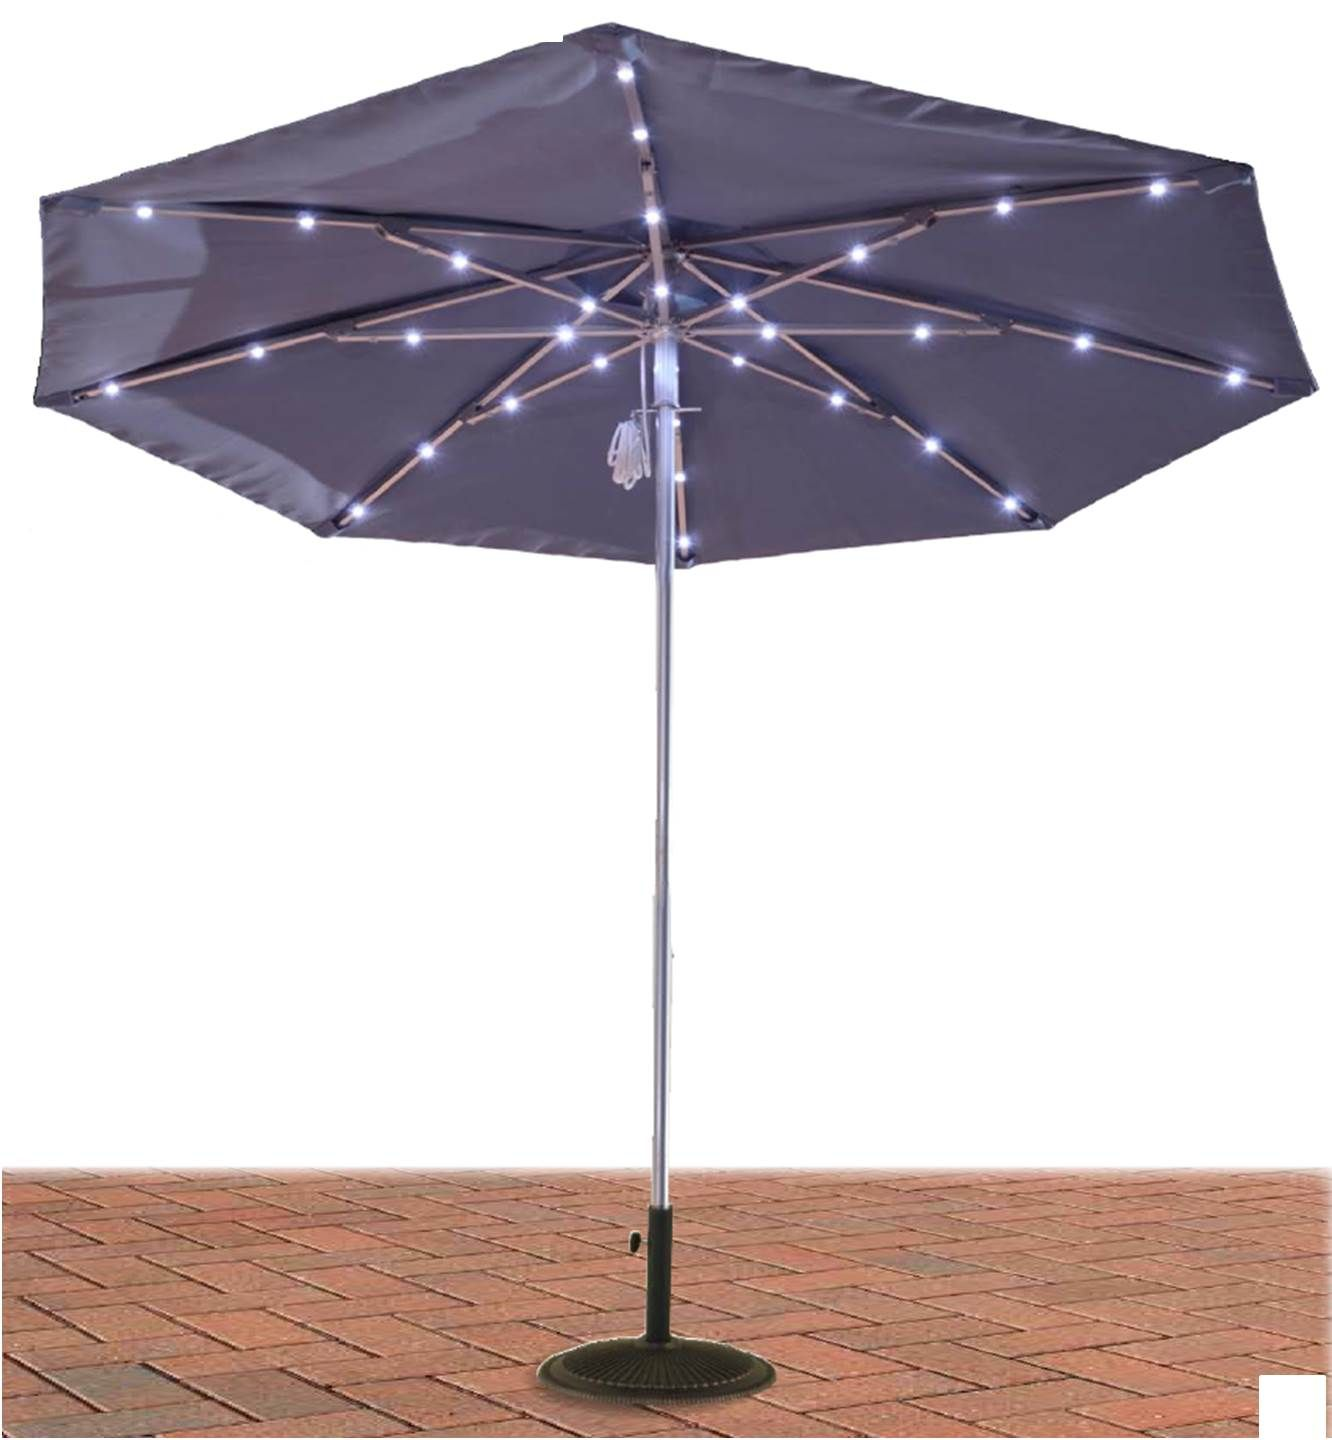 How To Use Umbrella Lights Sunbrella Solar Patio Umbrella With Led Lights  Patio Umbrellas